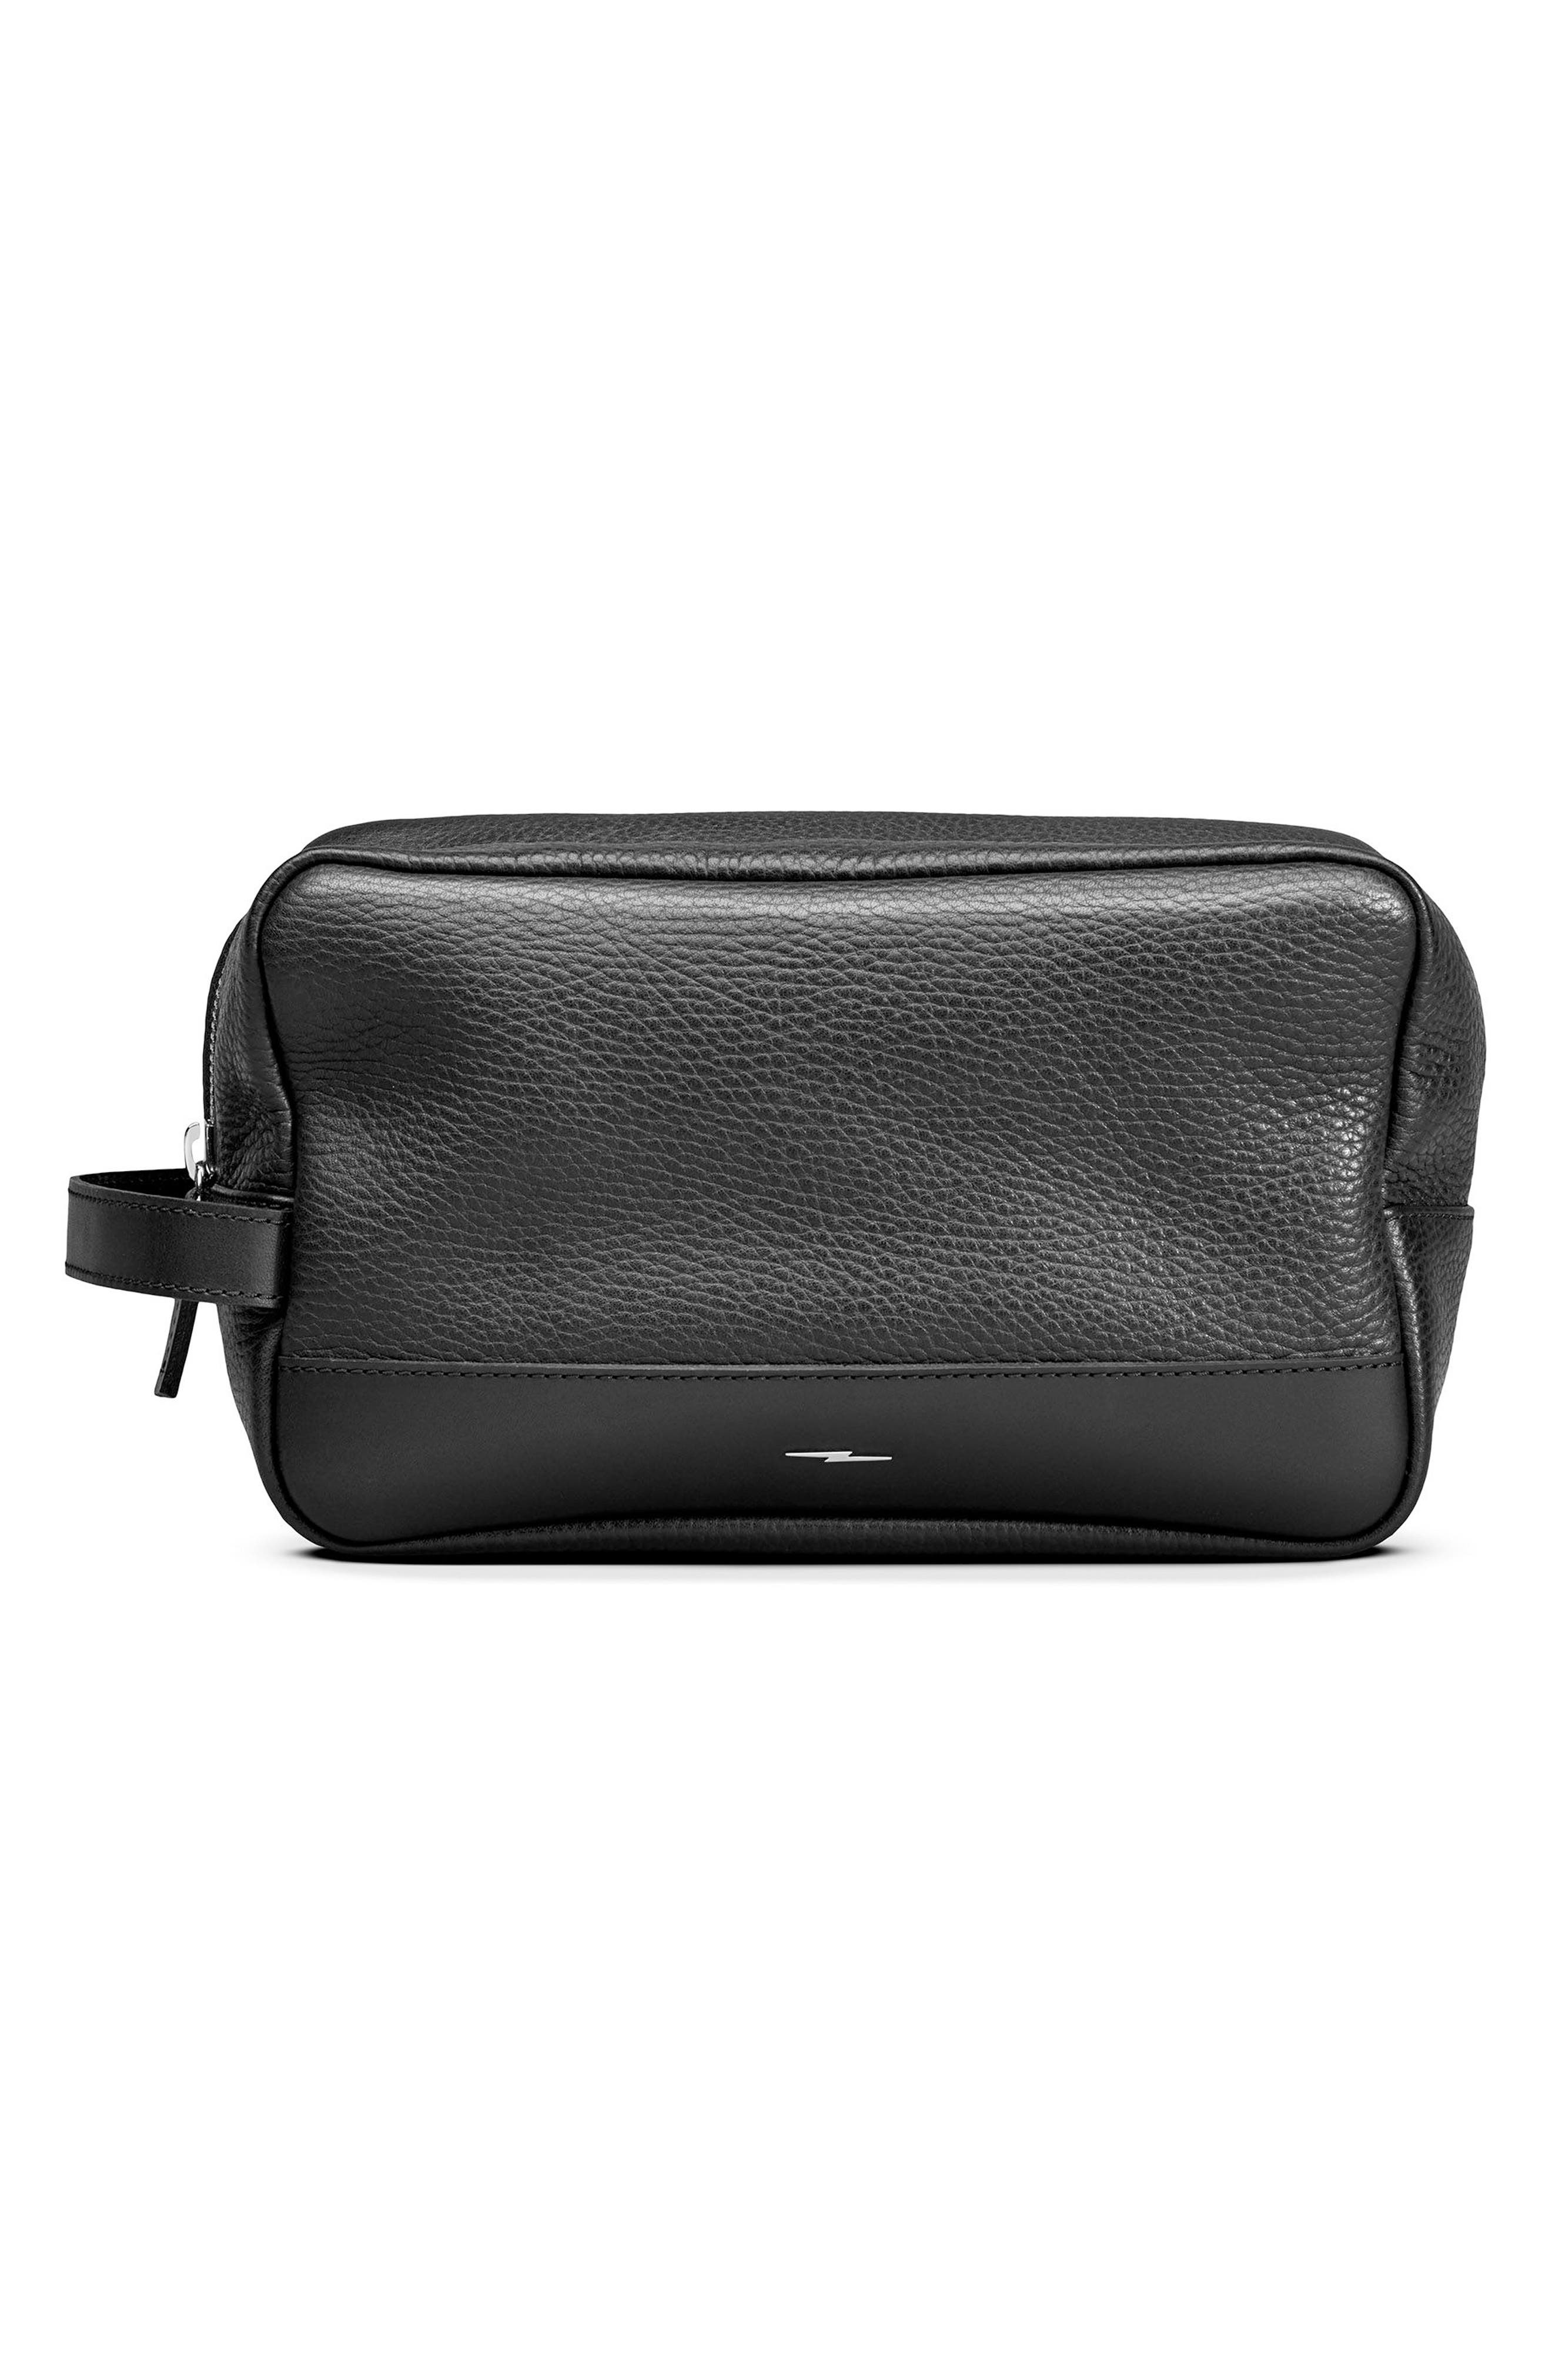 Leather Travel Kit,                         Main,                         color, Black